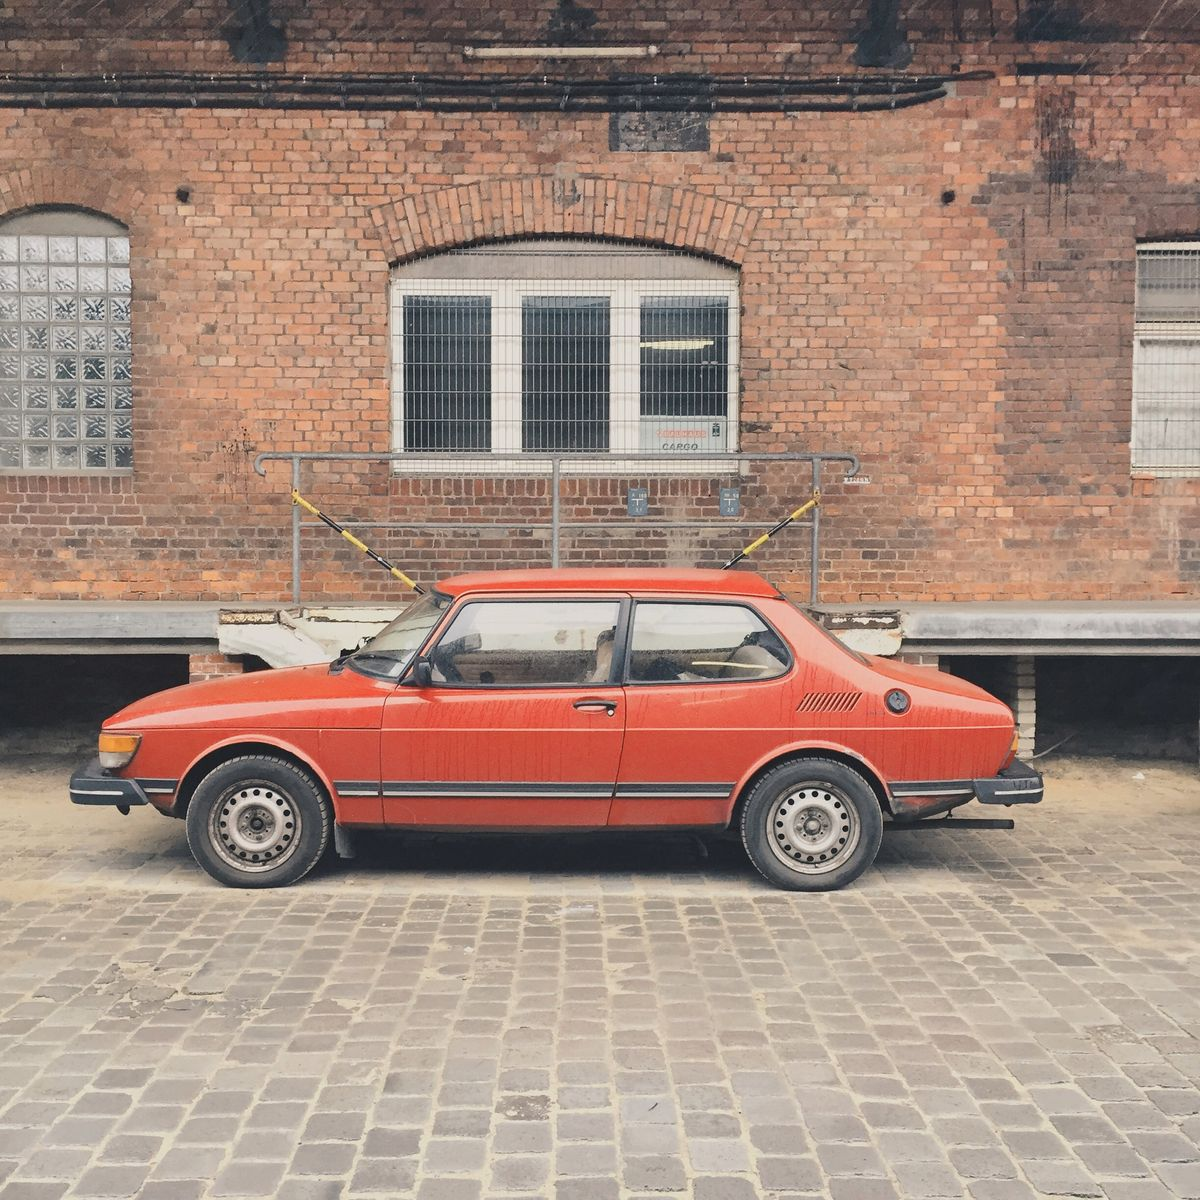 10 Tips for a Successful Car-Buying Experience on Craigslist